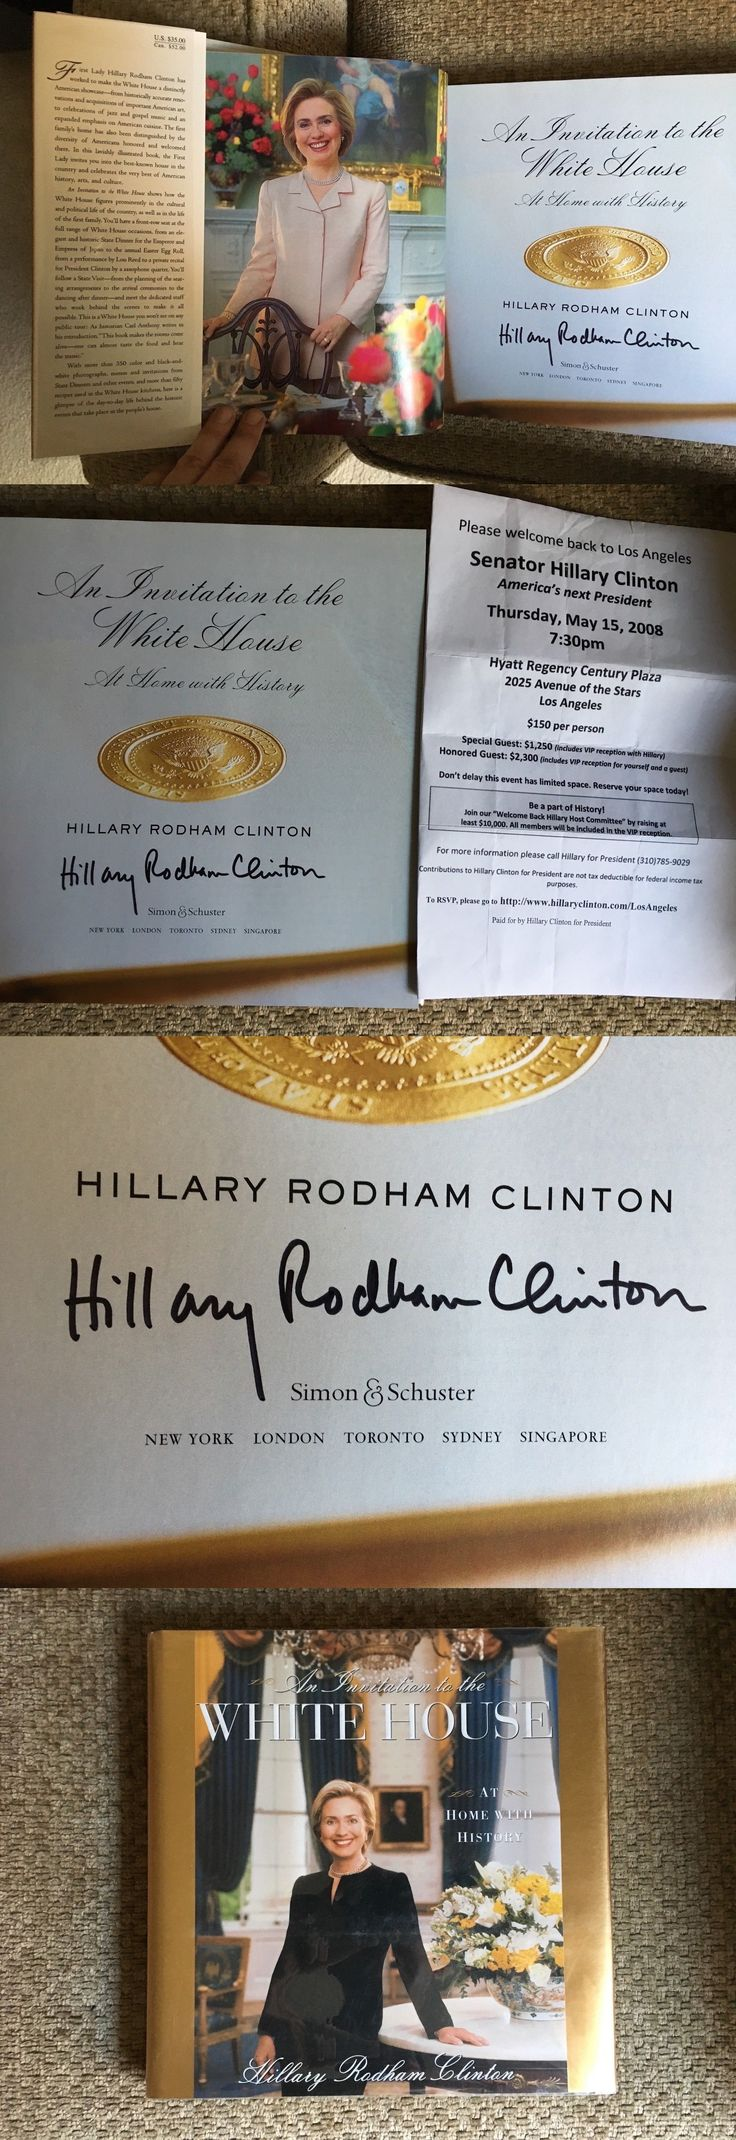 Hillary Clinton: Hillary Clinton Signed Autographed Book From 2008 Autograph Colorful Book!! -> BUY IT NOW ONLY: $19.99 on eBay!